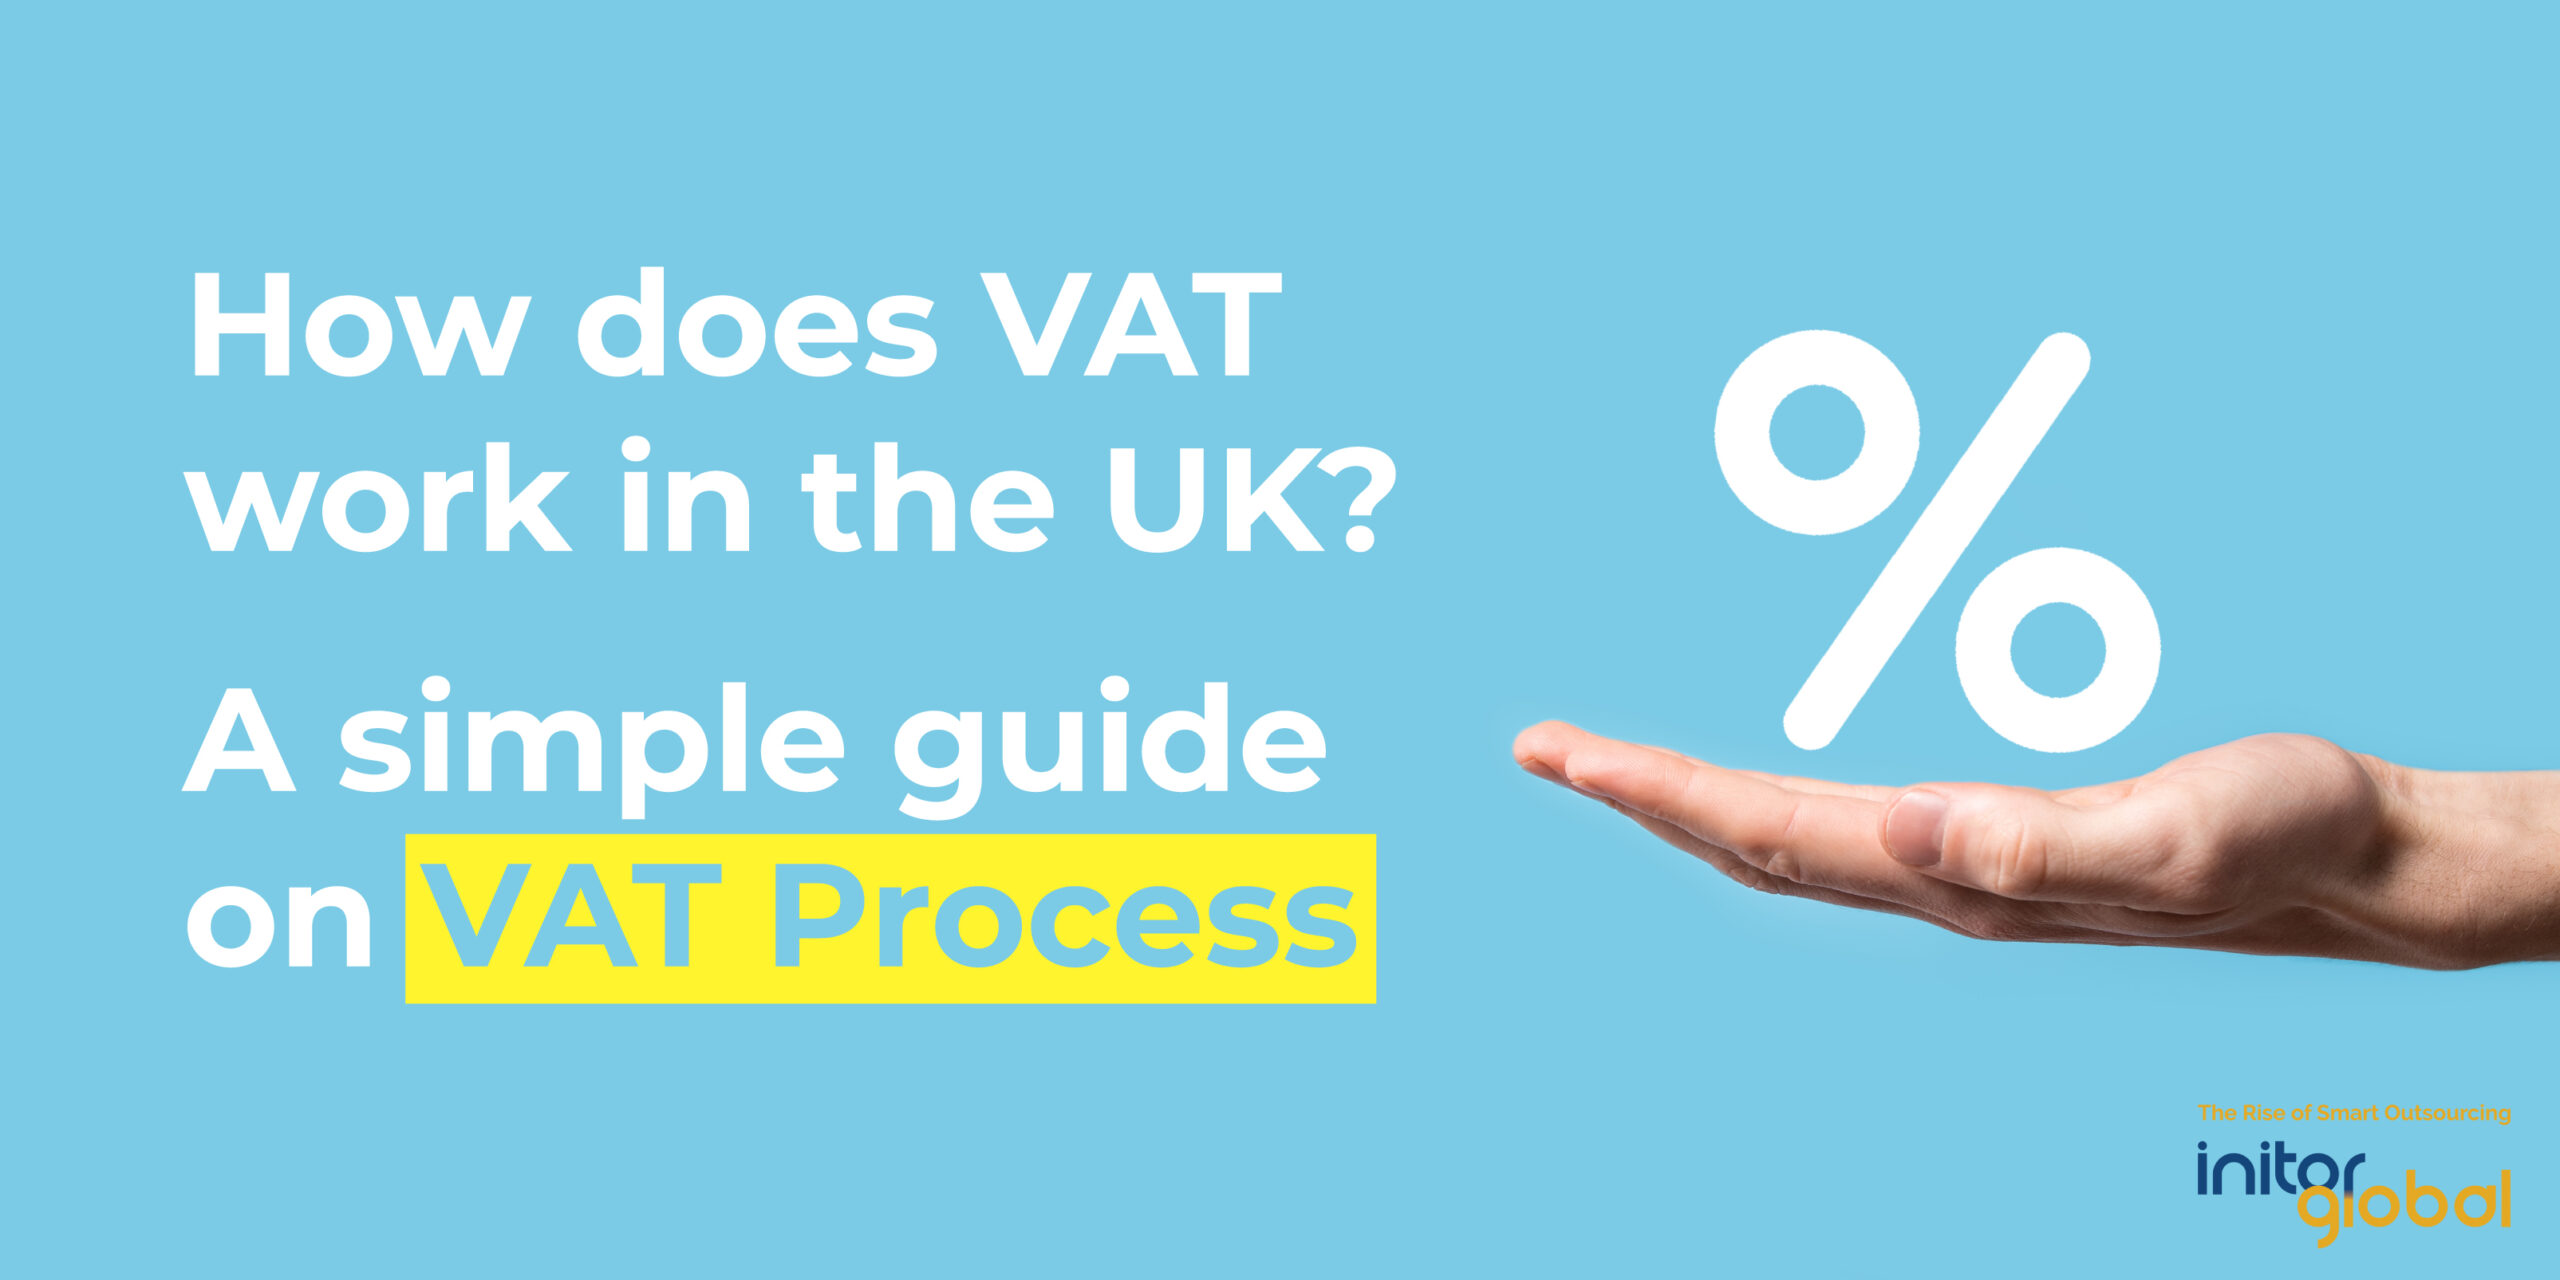 How does VAT work in the UK? A simple guide on VAT Process